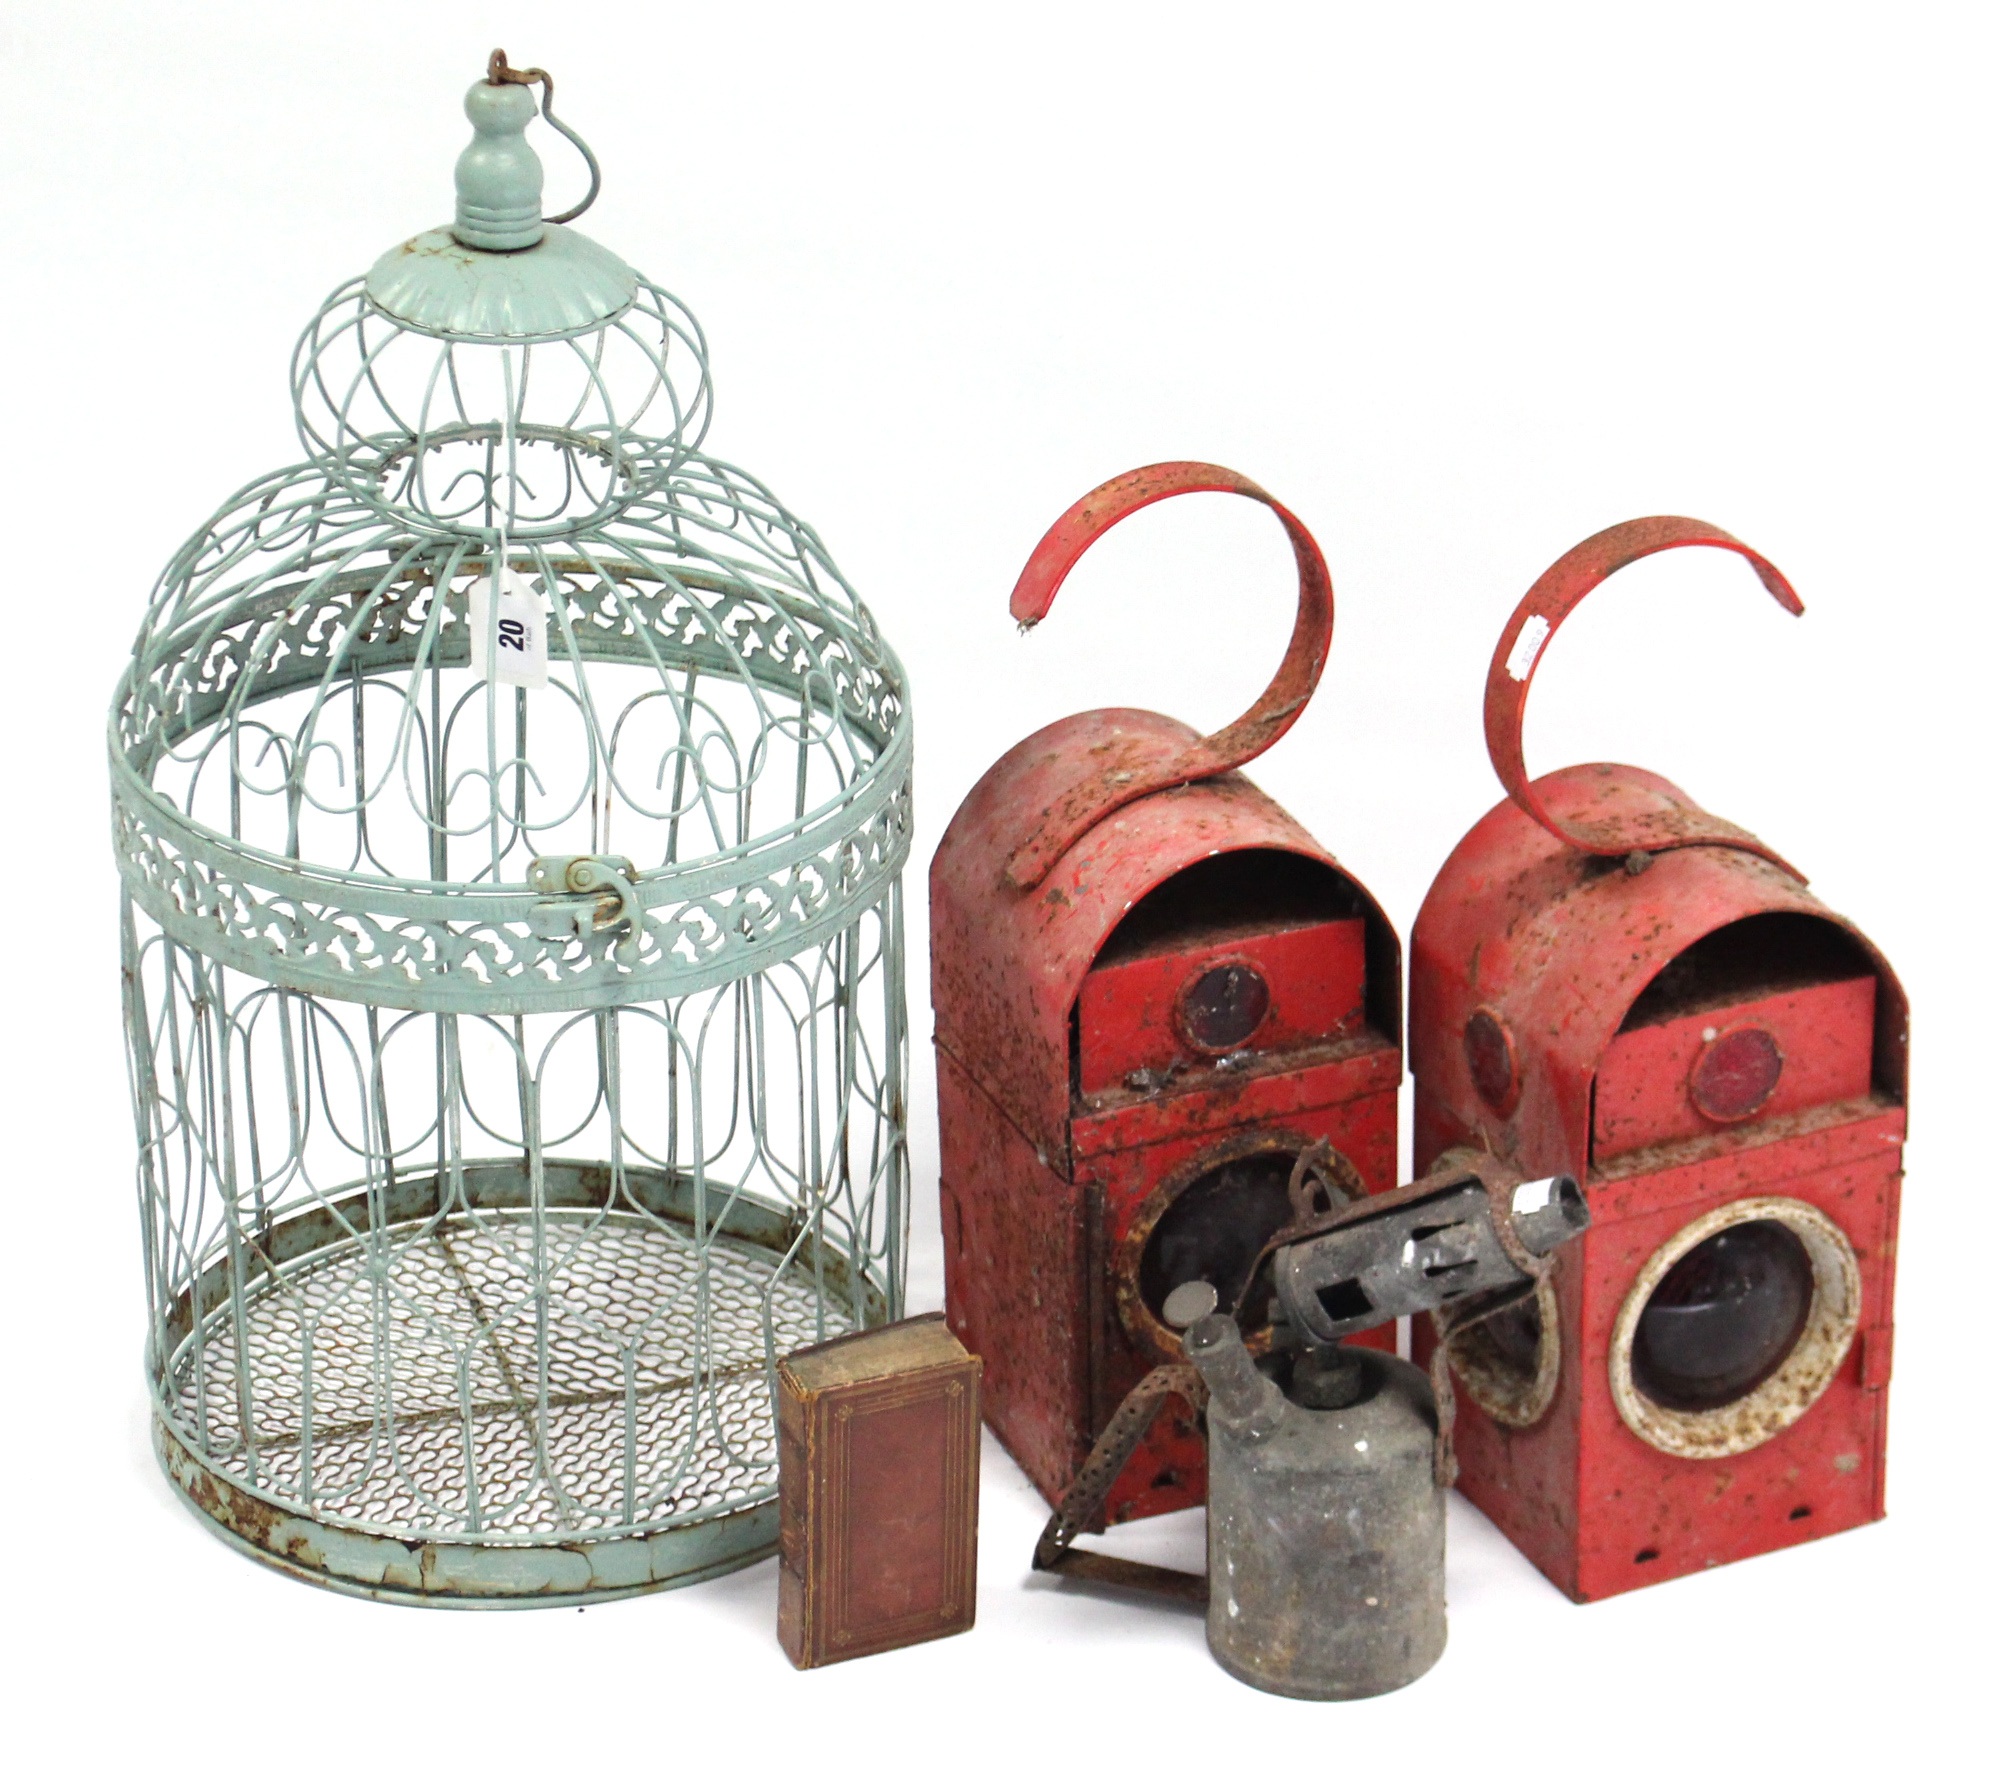 Lot 20 - A pale green painted wirework birdcage; two railway lanterns; a small leather-bound volume; a blow-